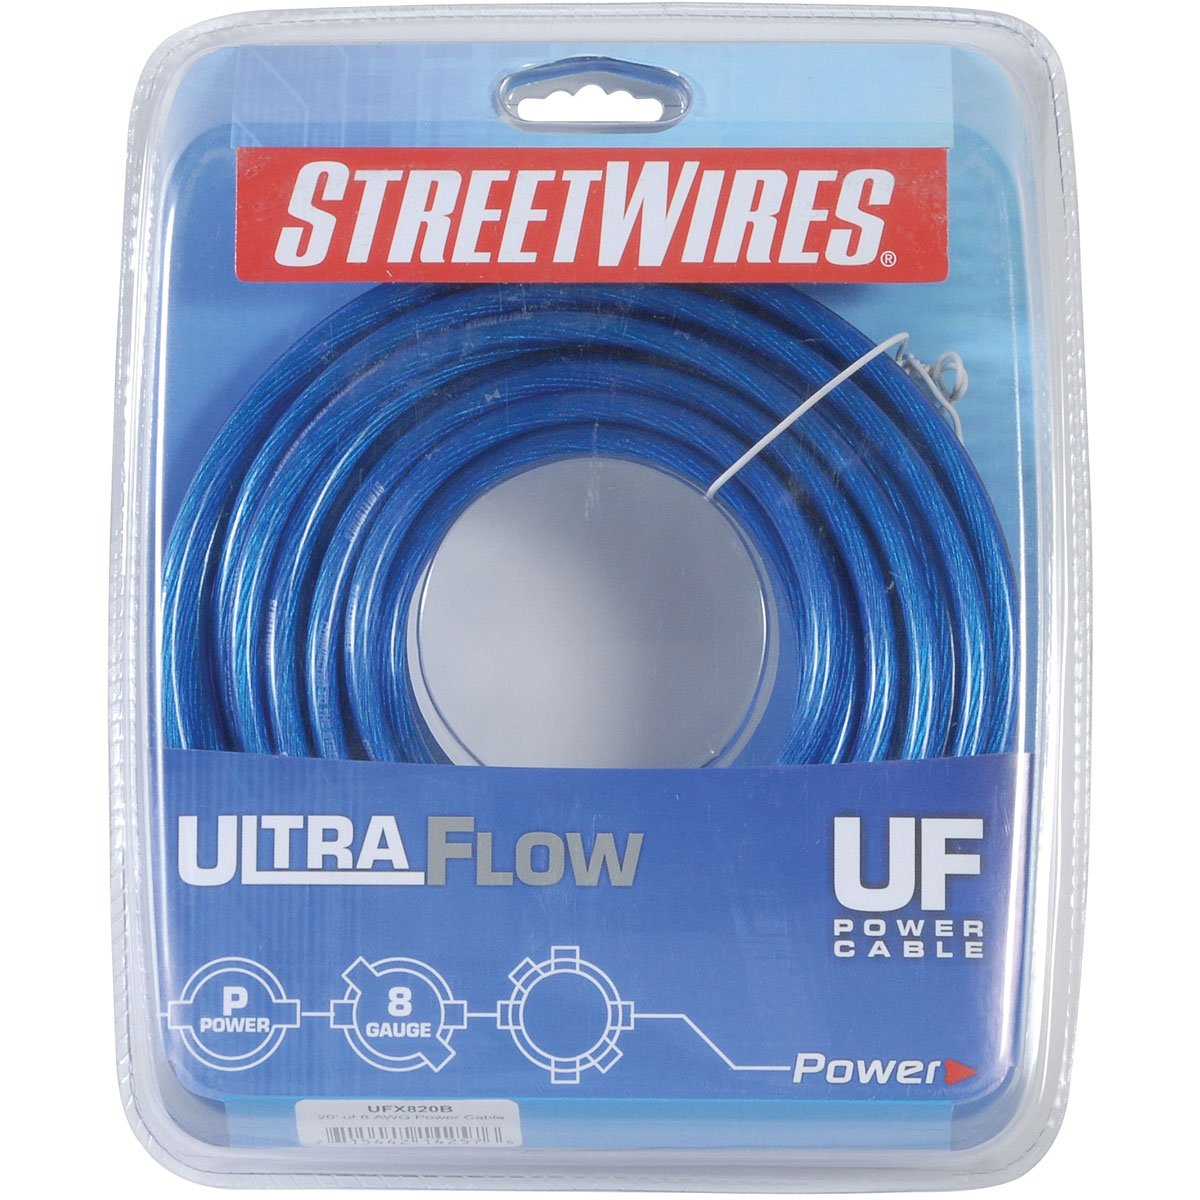 NEW Streetwires UFX820B 8 Gauge Power Cable/Wire 20 Ft